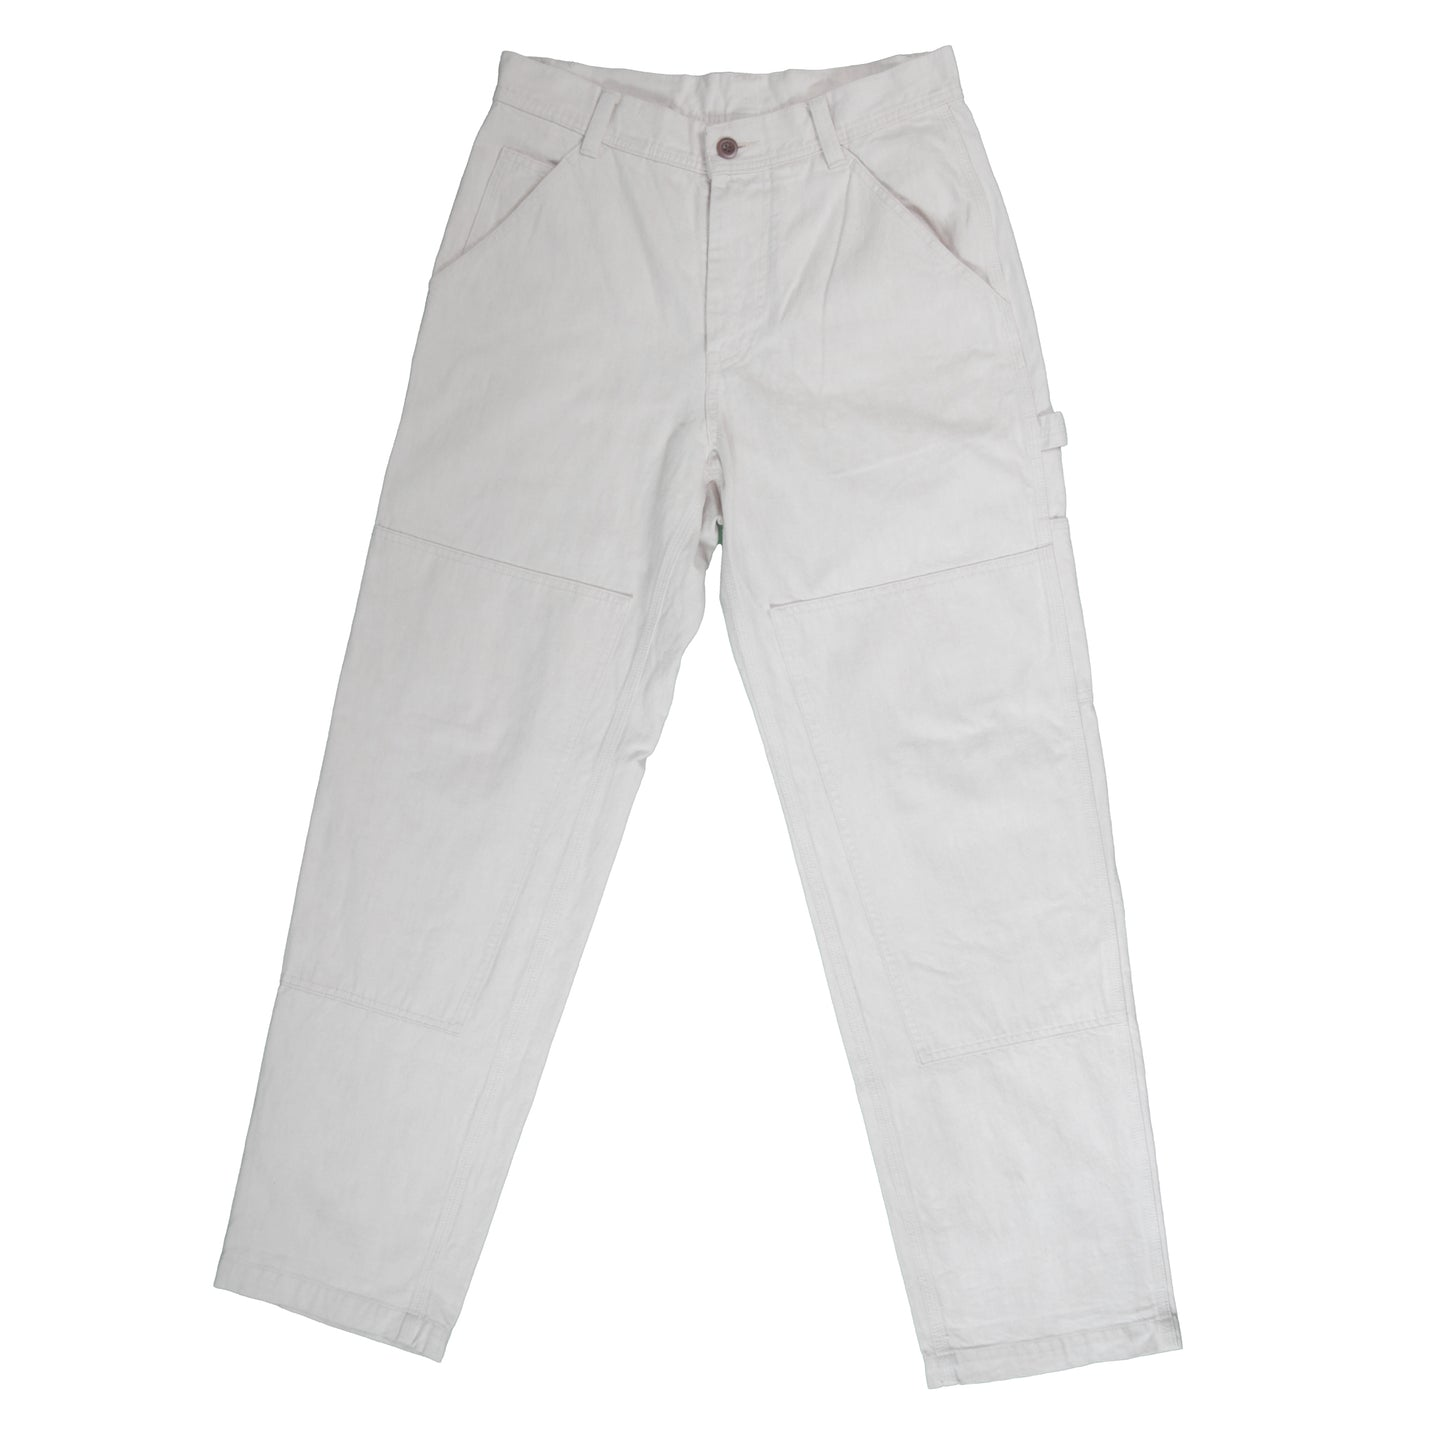 margaret howell white carpenter pants <Br> Size medium